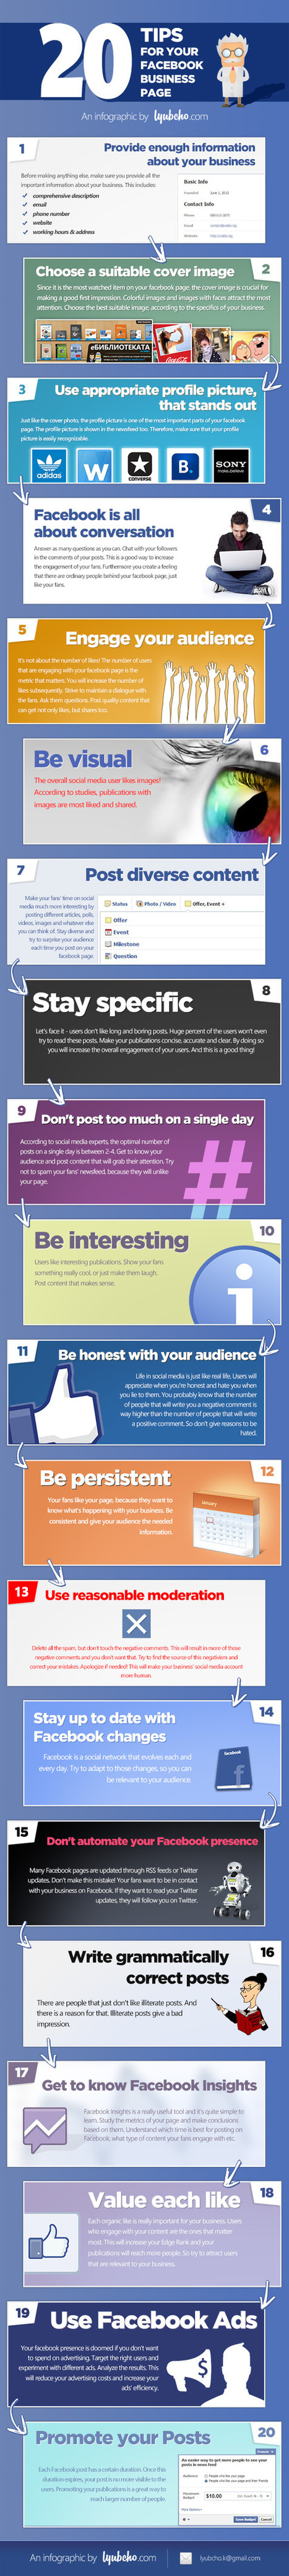 20 Tips for your Facebook Business Page / INFOGRAPHIC | Circle of Legal Trust - Attorney Online Strategies and Tactics | Scoop.it